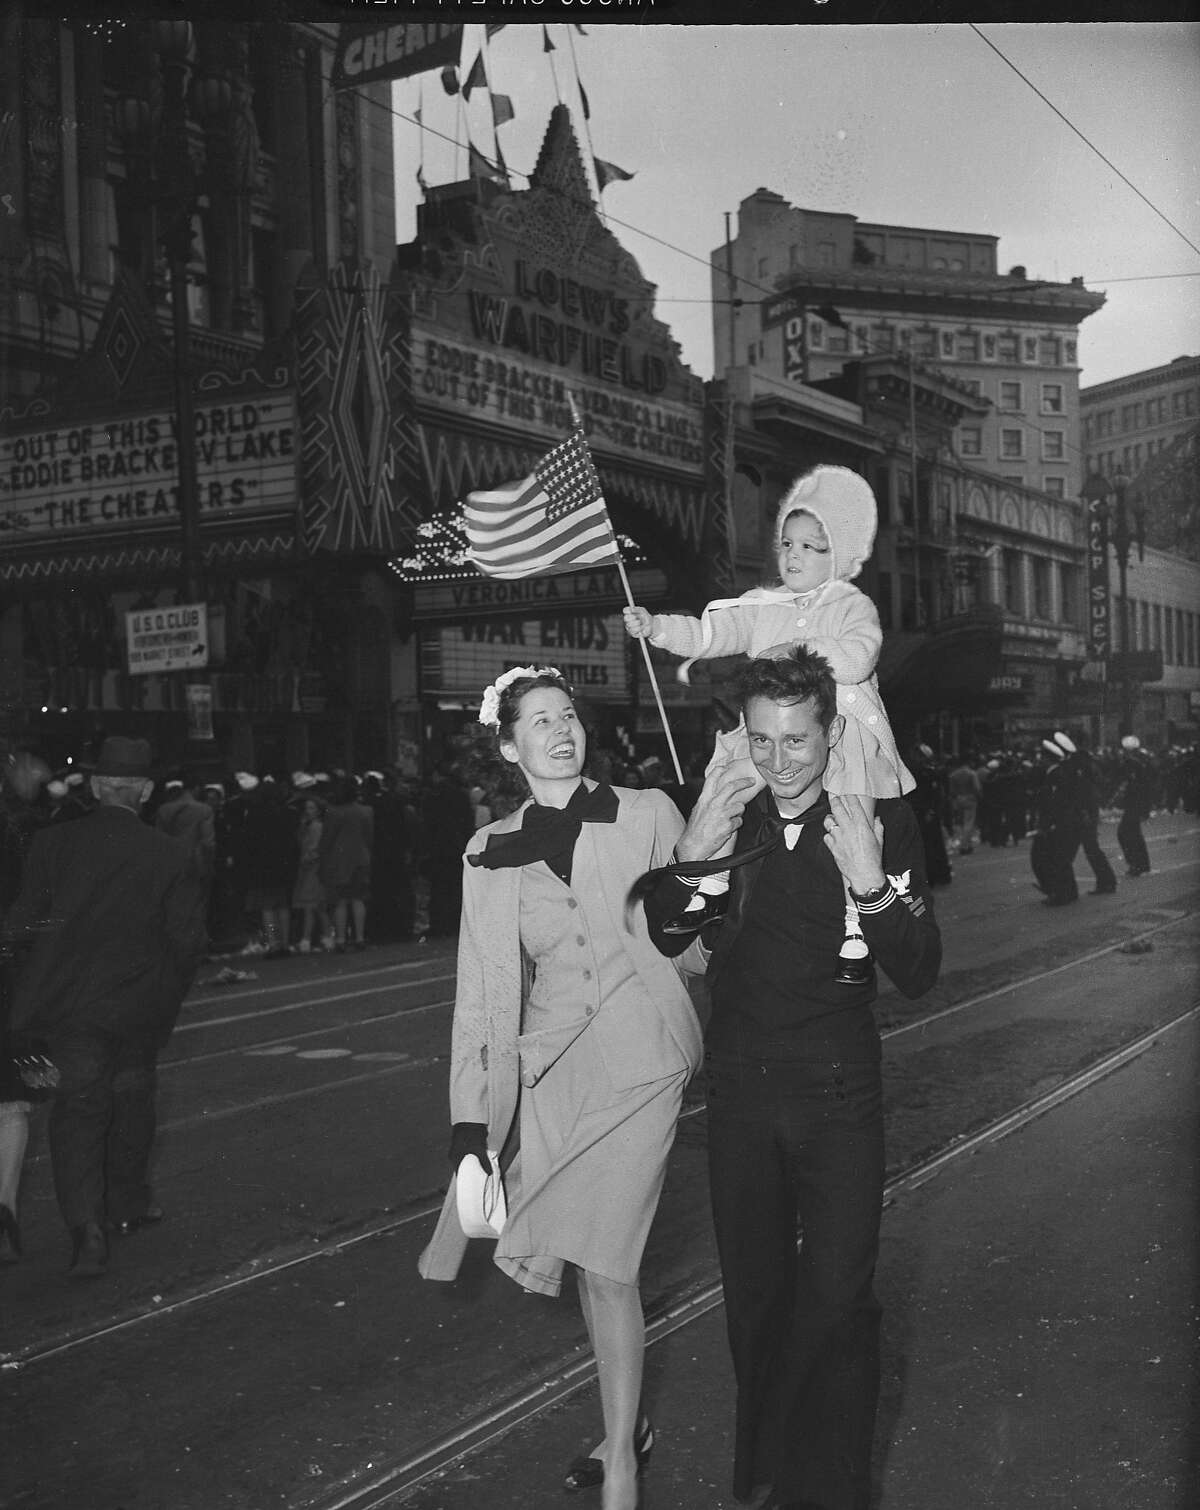 V-J Day celebration in San Francisco ..August 14-15 1945 End of World War II, Japan surrenders Negative says 6th and Market Streets